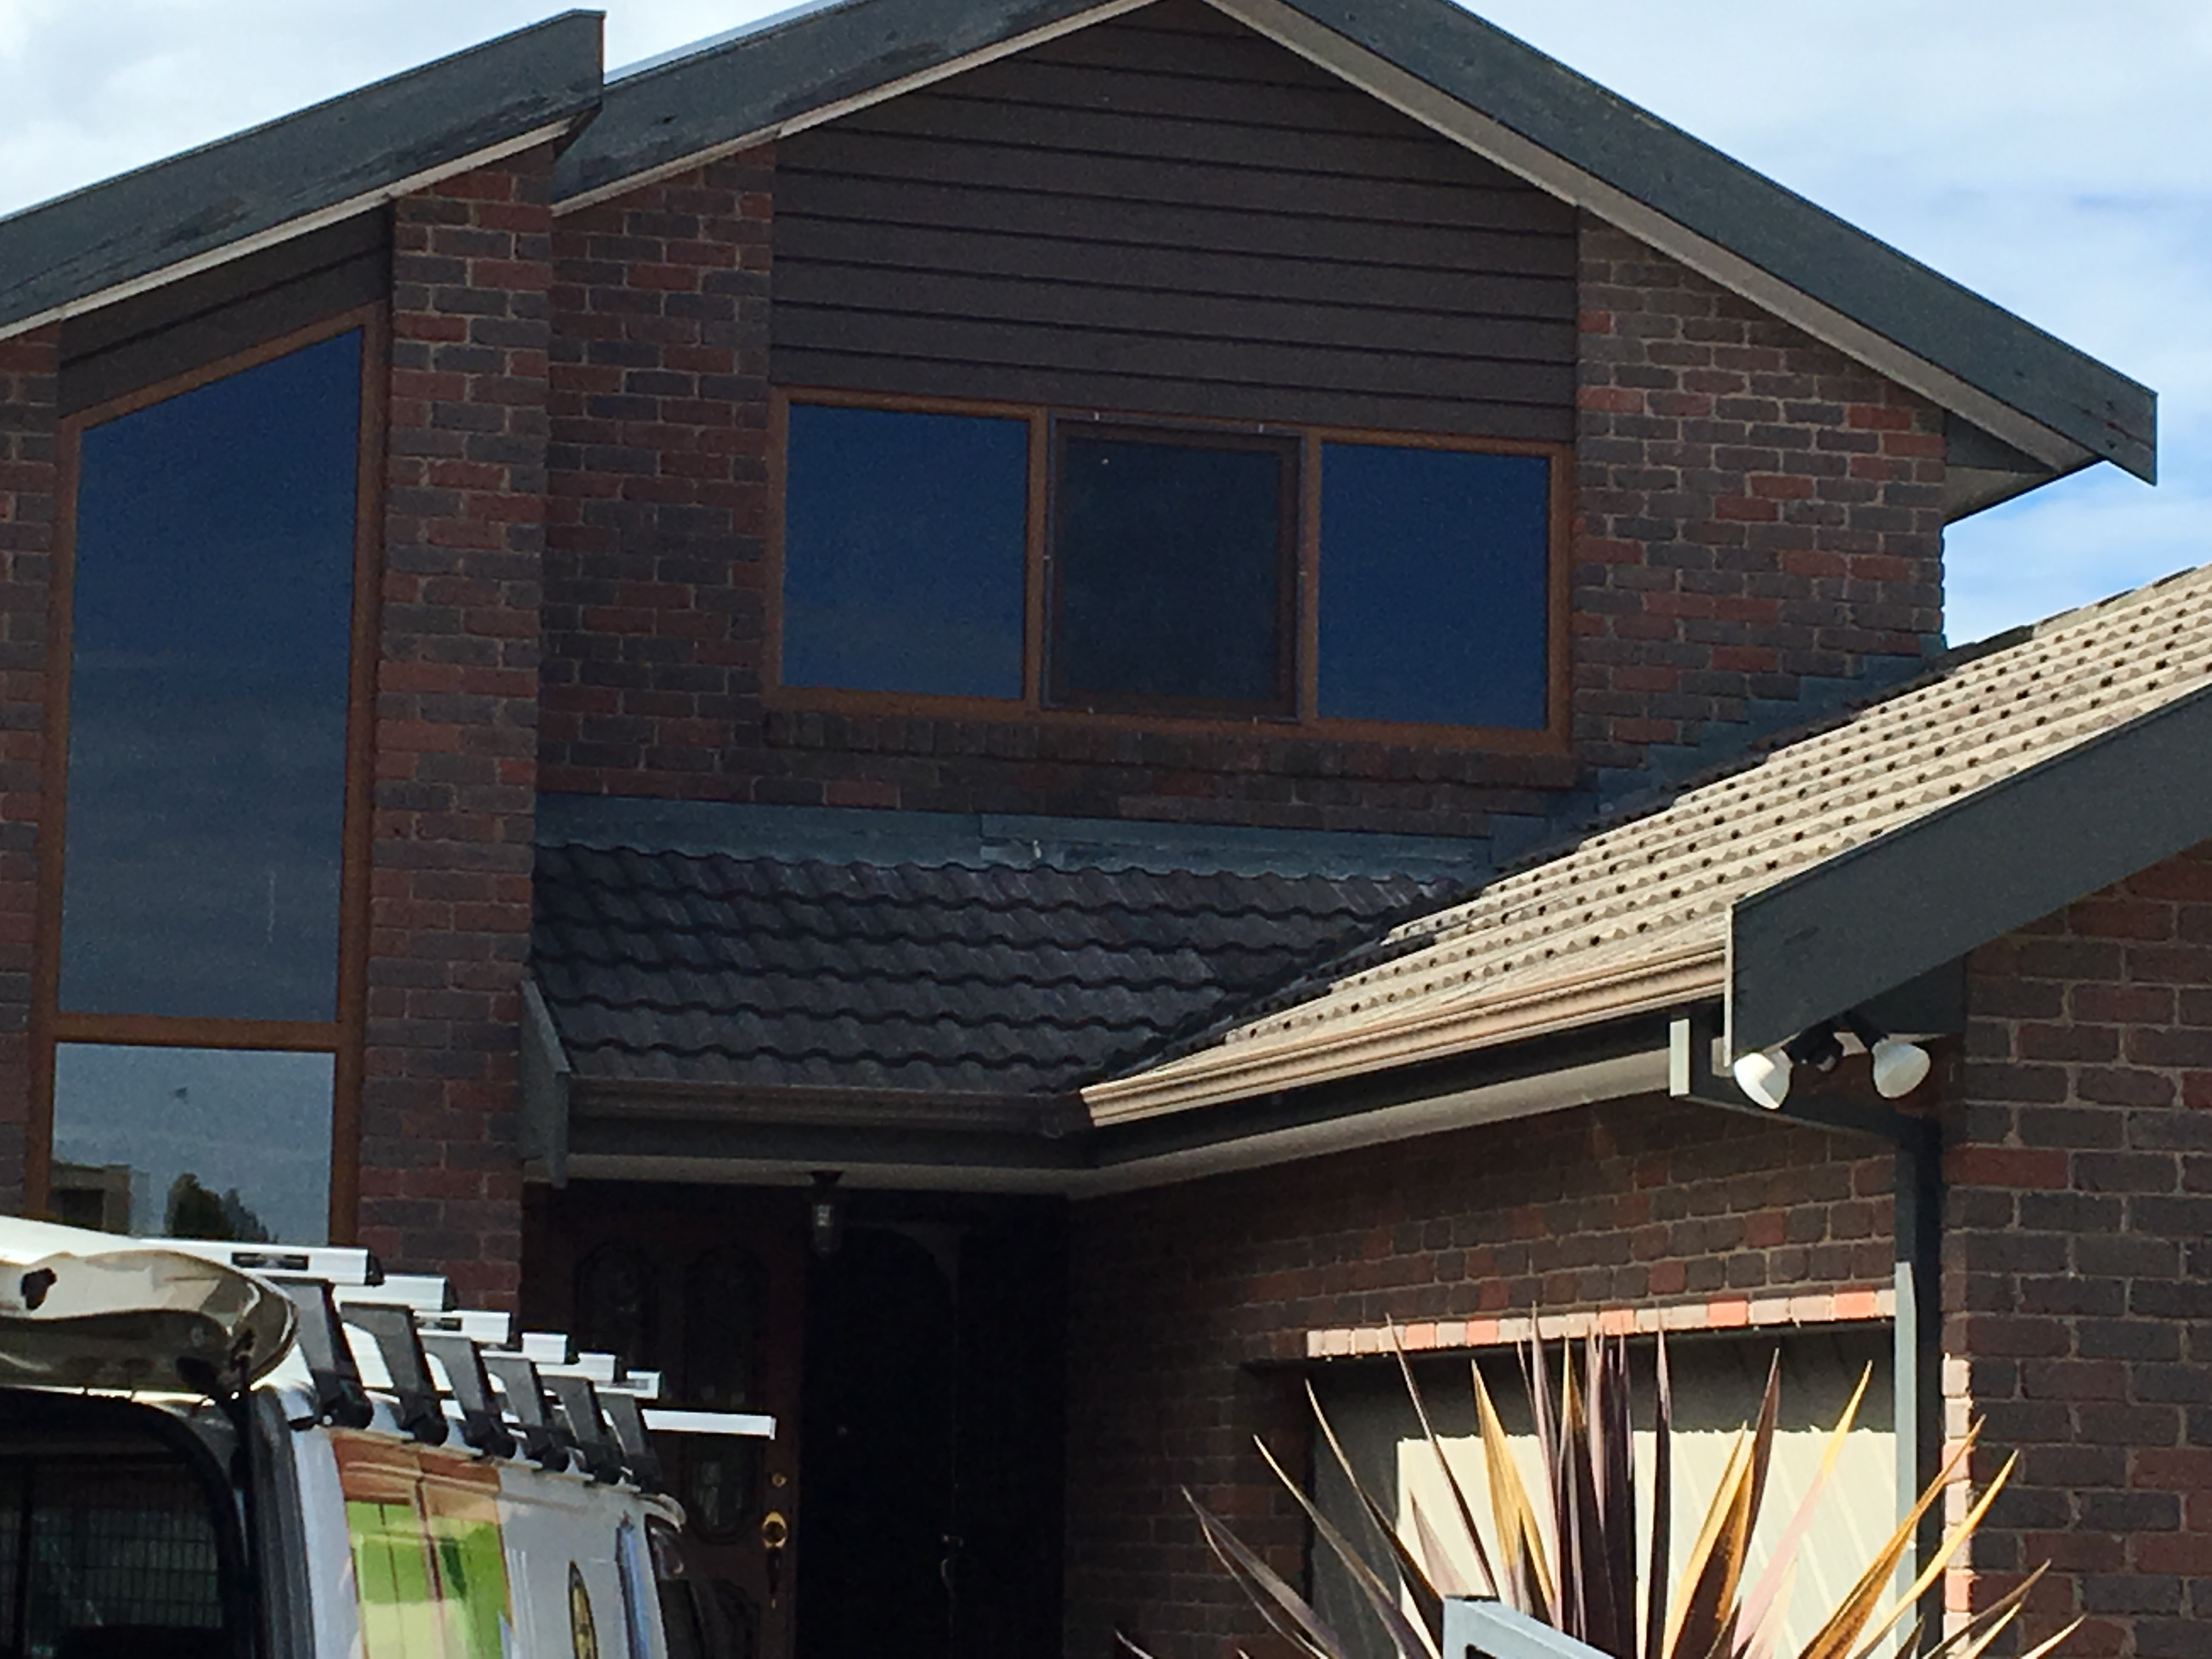 Double glazing windows installed in Endeavour Hills, Victoria, Australia